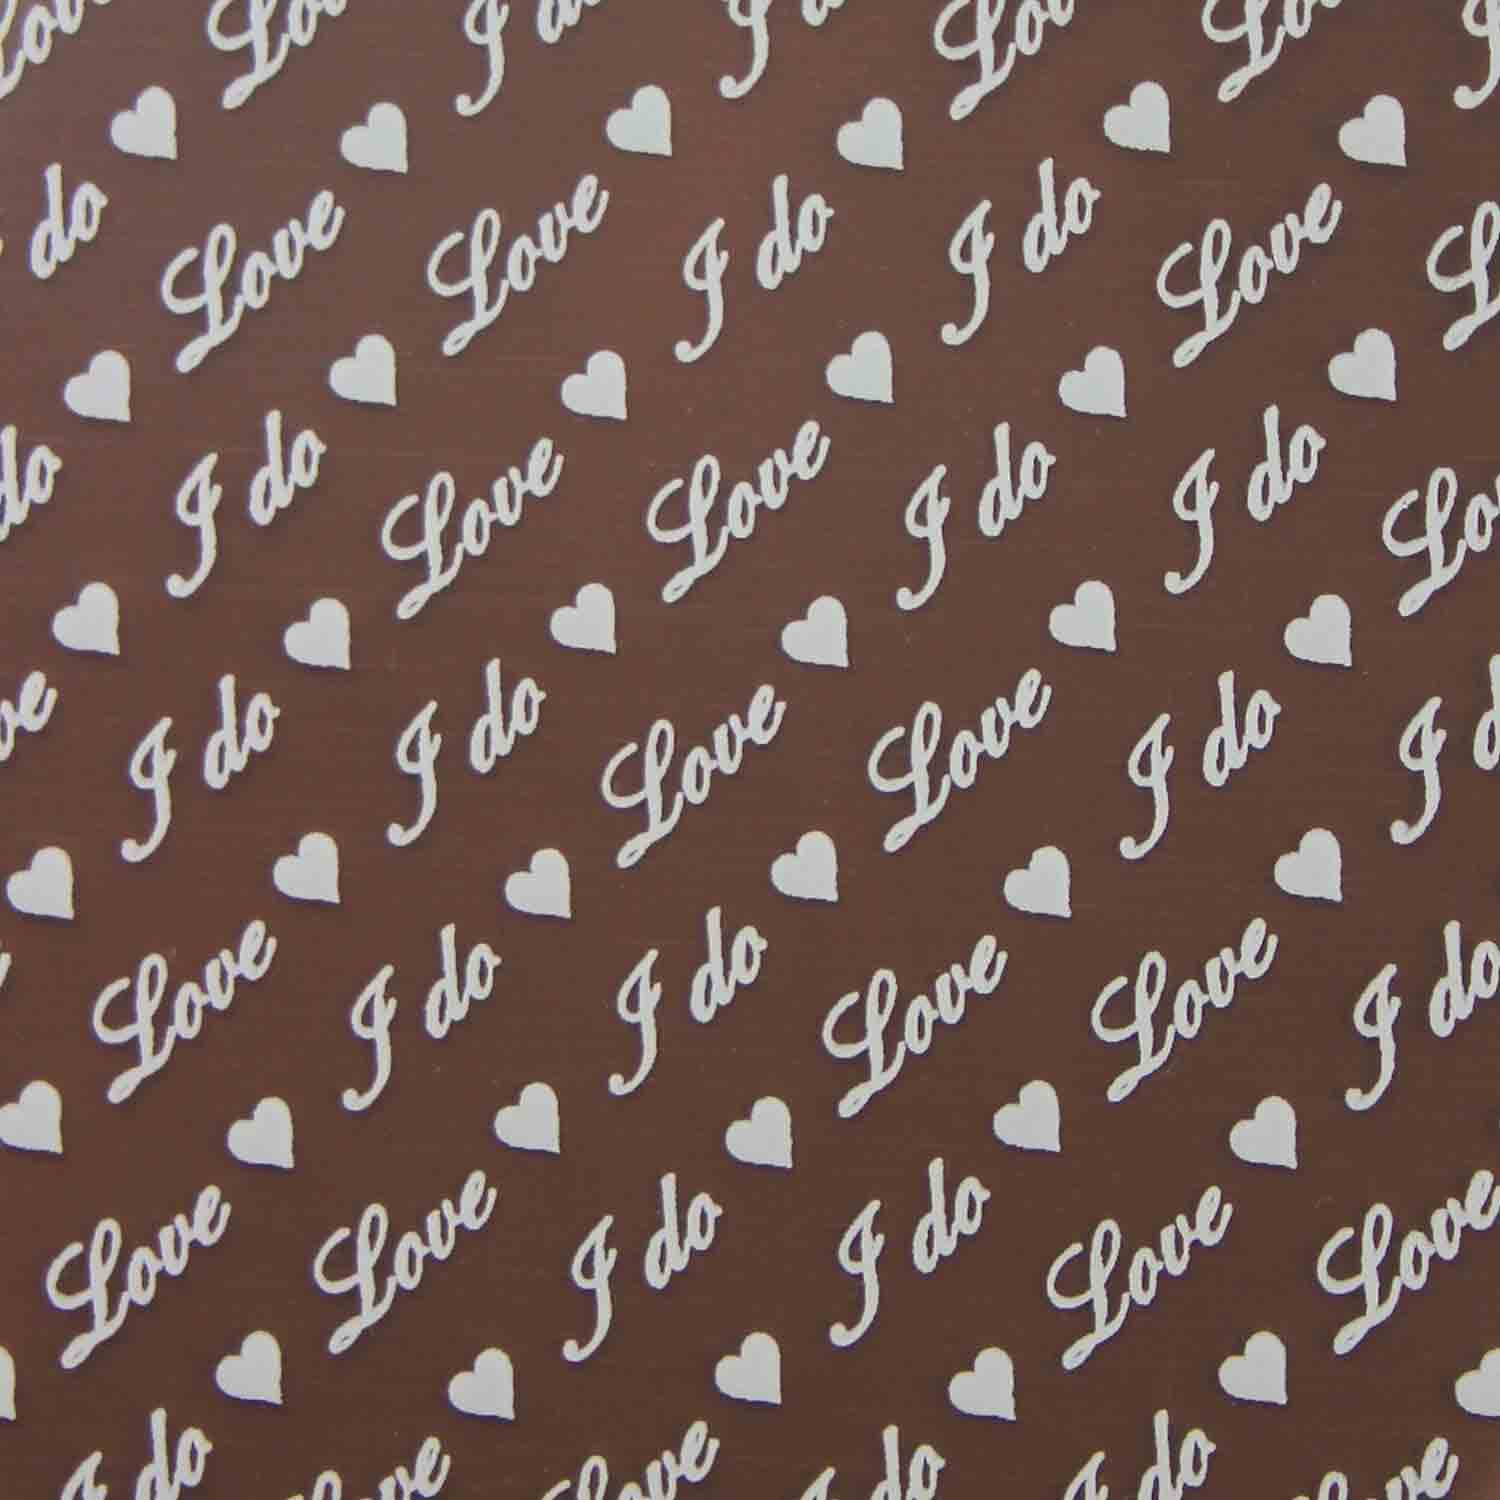 Wedding and Anniversary Chocolate Transfer Sheets